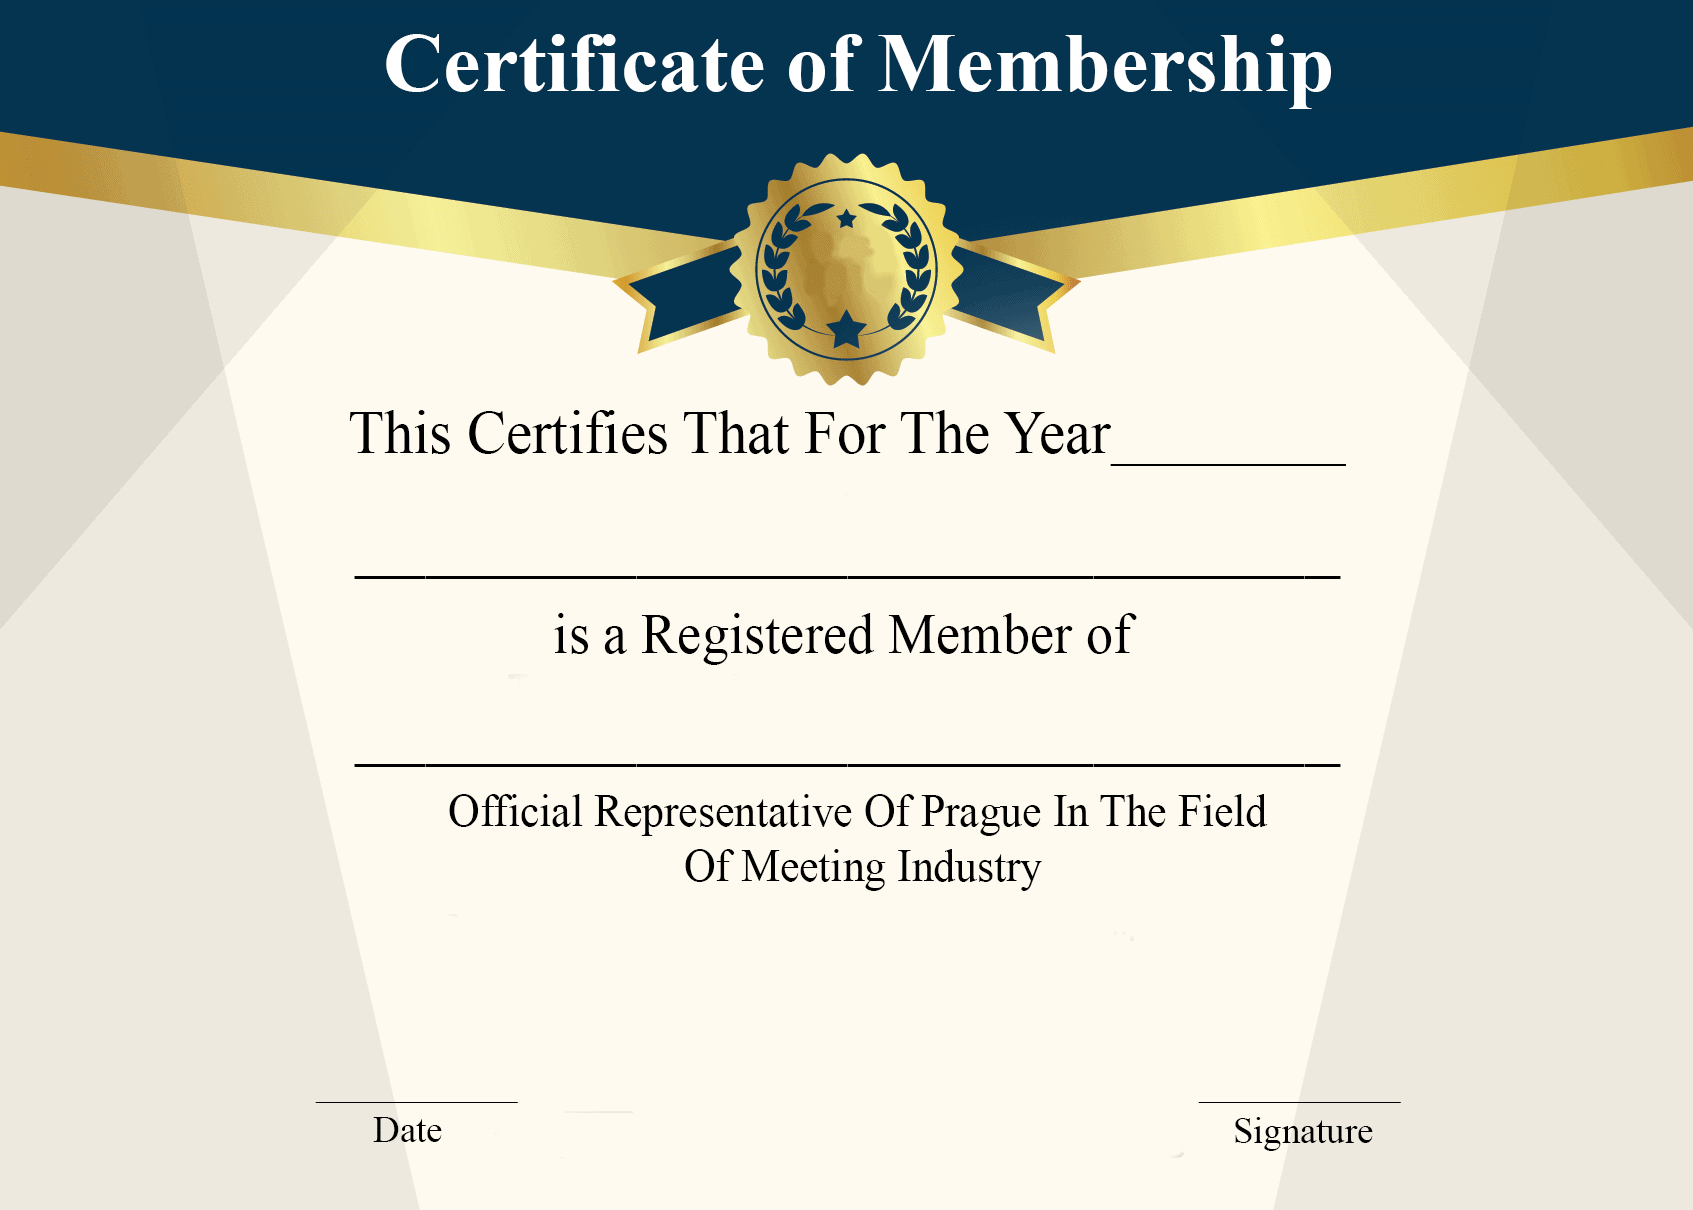 Certificate of Membership Download